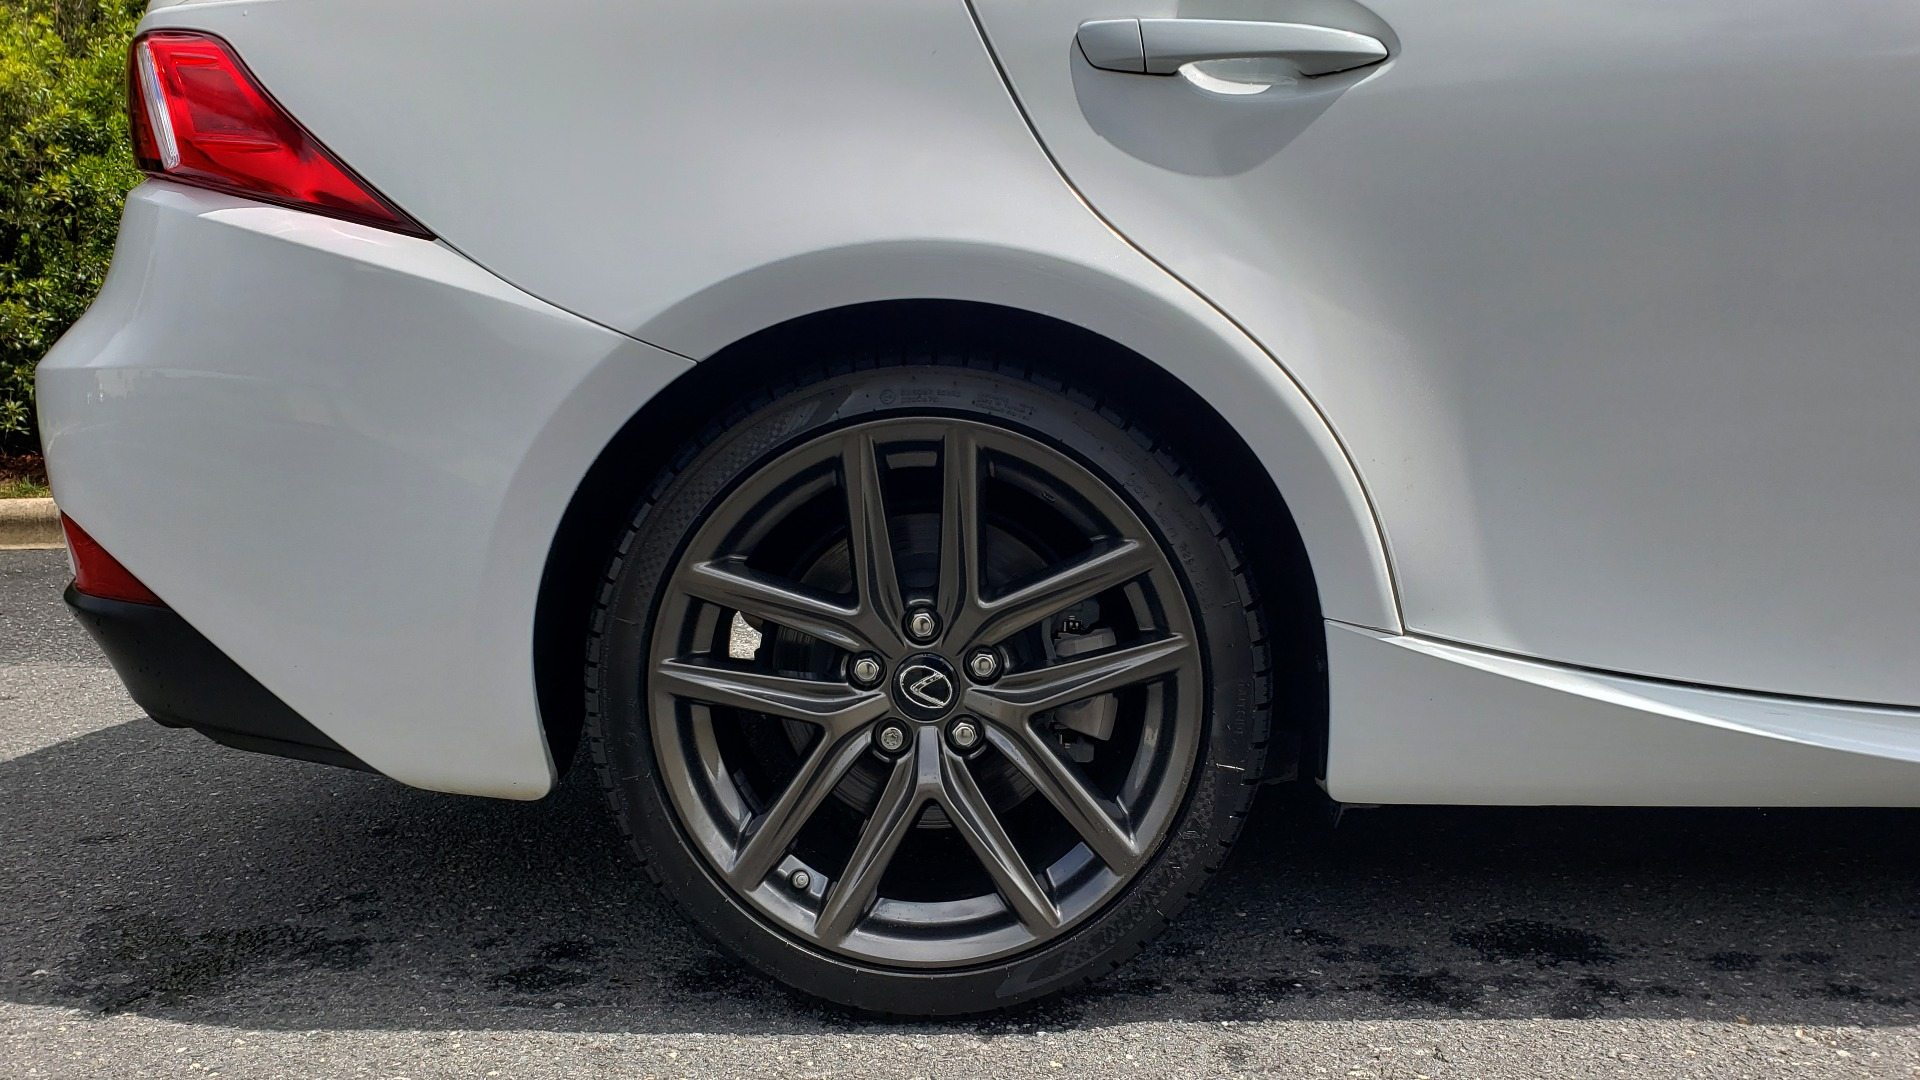 Used 2014 Lexus IS 350 F-SPORT / NAV / SUNROOF / REARVIEW / BSM / MARK LEV SND for sale Sold at Formula Imports in Charlotte NC 28227 80